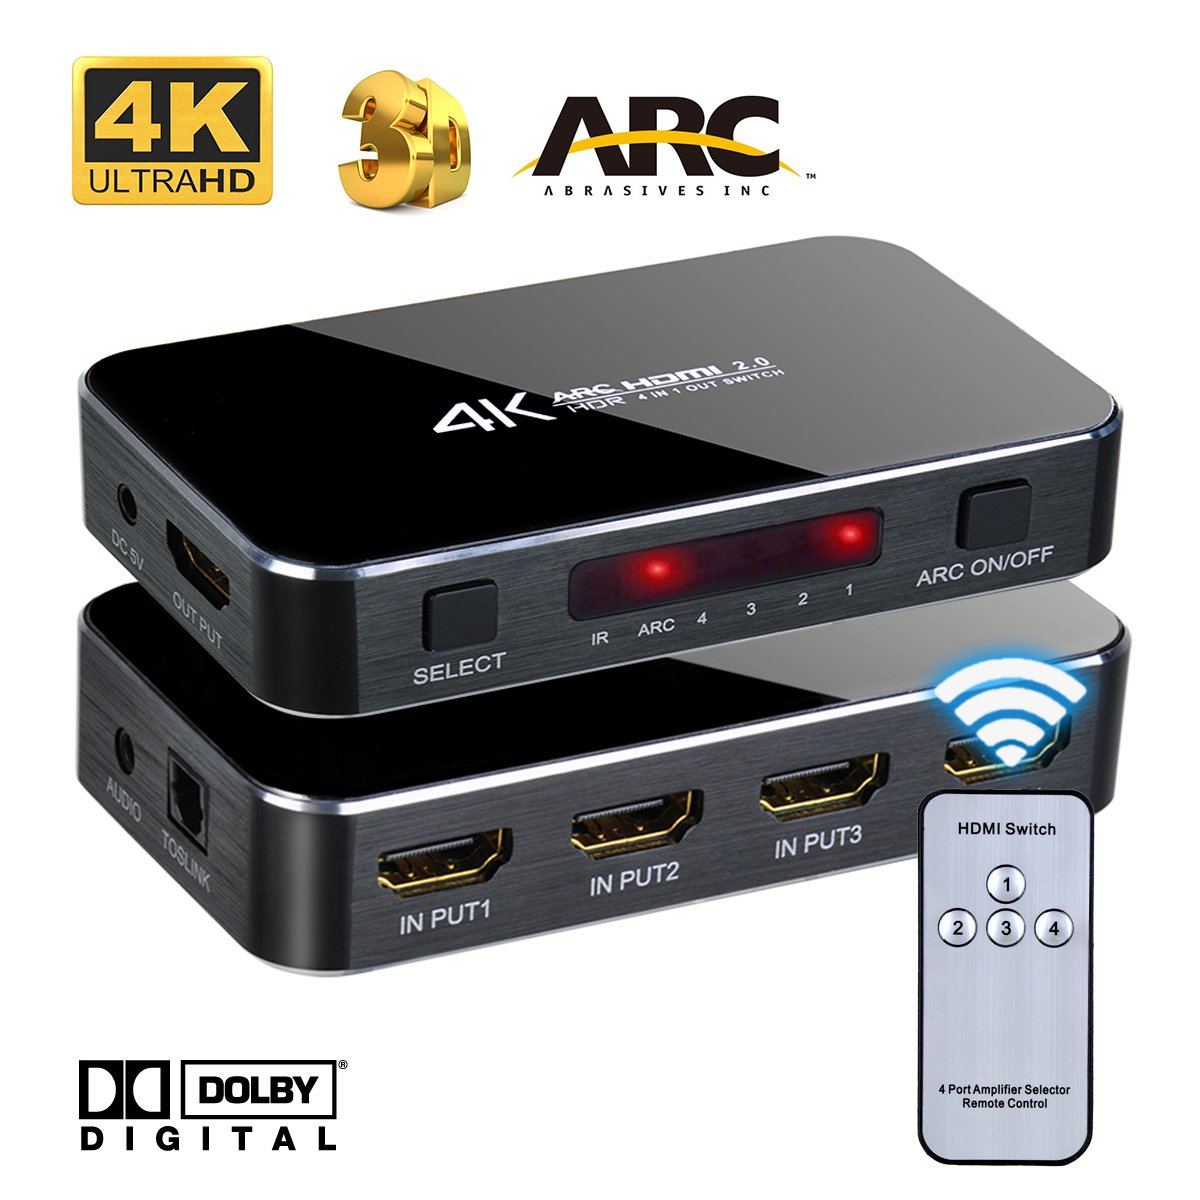 4K HDMI Switch Selector, 4 input 1 output 3D Support, ARC Audio Extractor, with Optical Toslink Audio Out for Home Theater/Multimedia Presentation/HDTV / DVD / PS3 / PS4 / STB/Bluray Player etc by Iseebiz